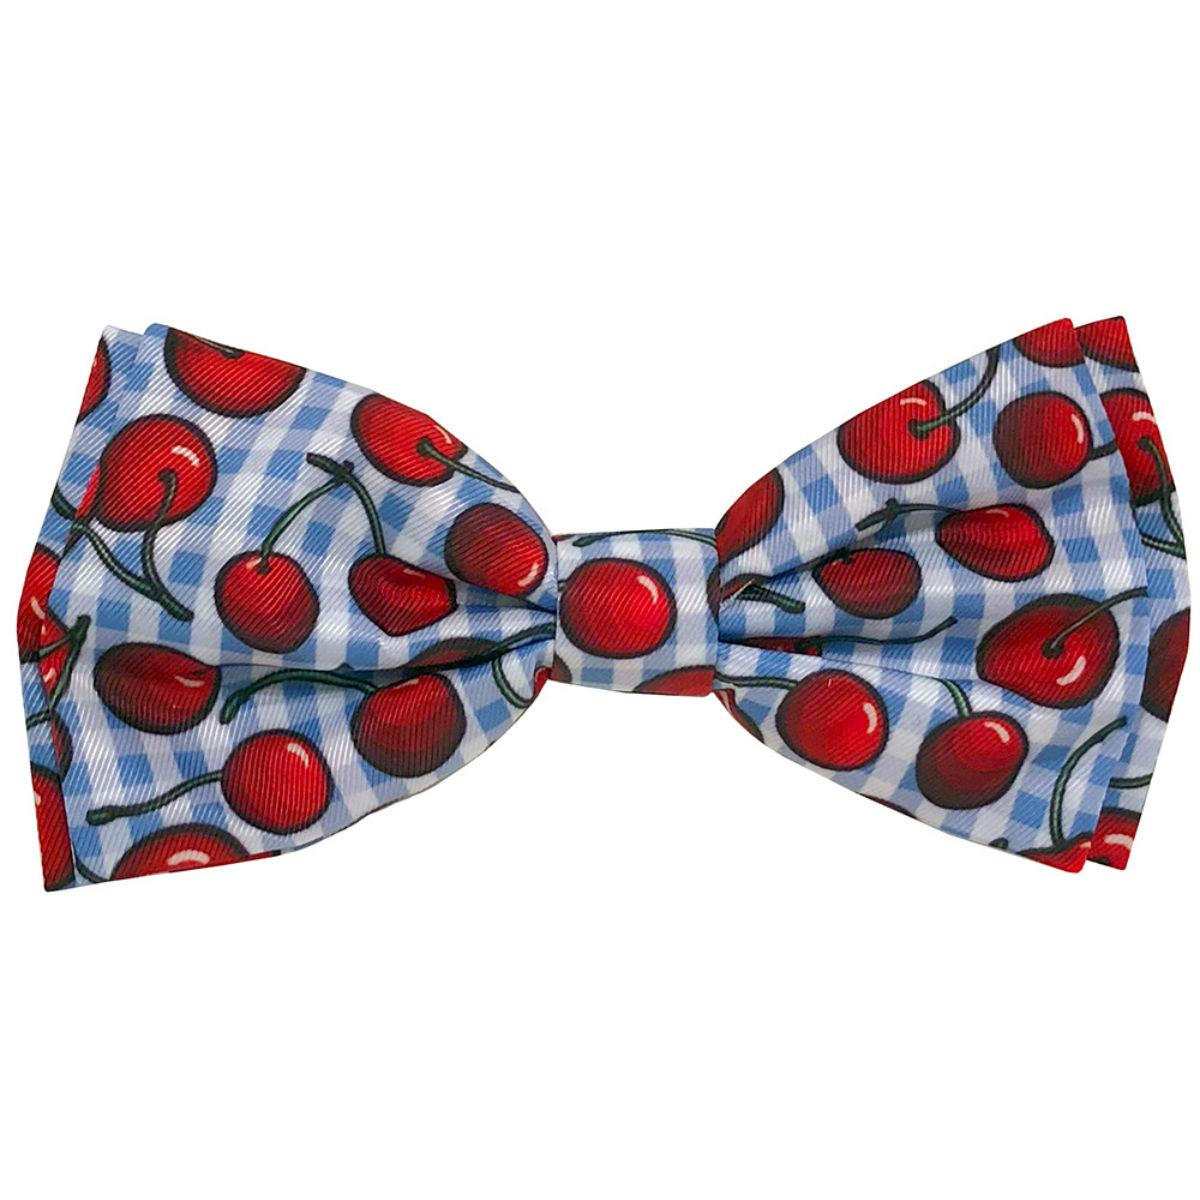 Huxley & Kent Dog and Cat Bow Tie Collar Attachment - American Pie